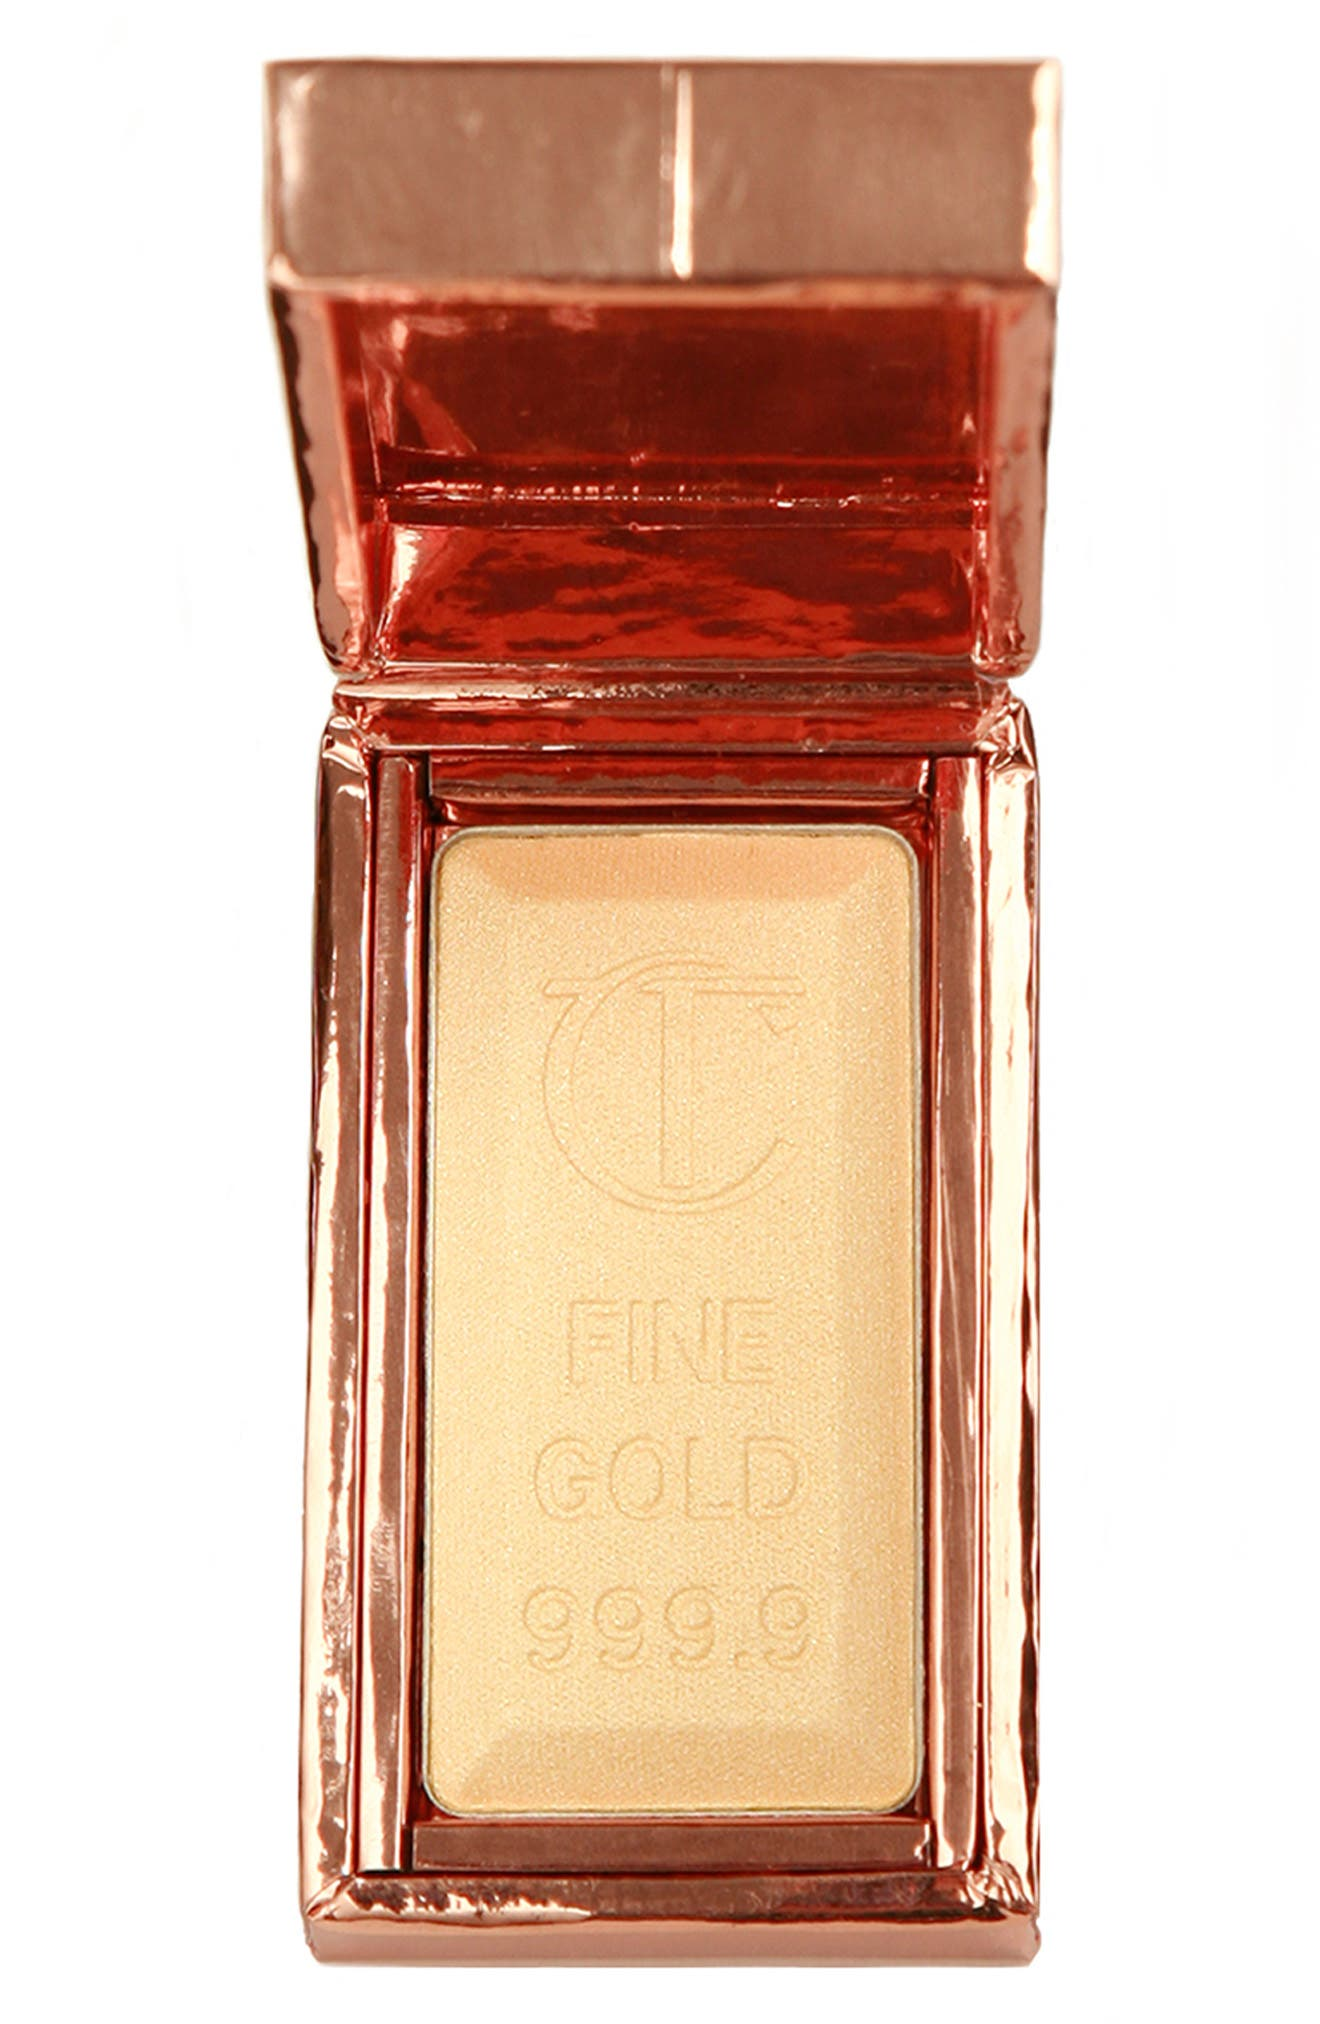 Charlotte Tilbury Bar of Gold